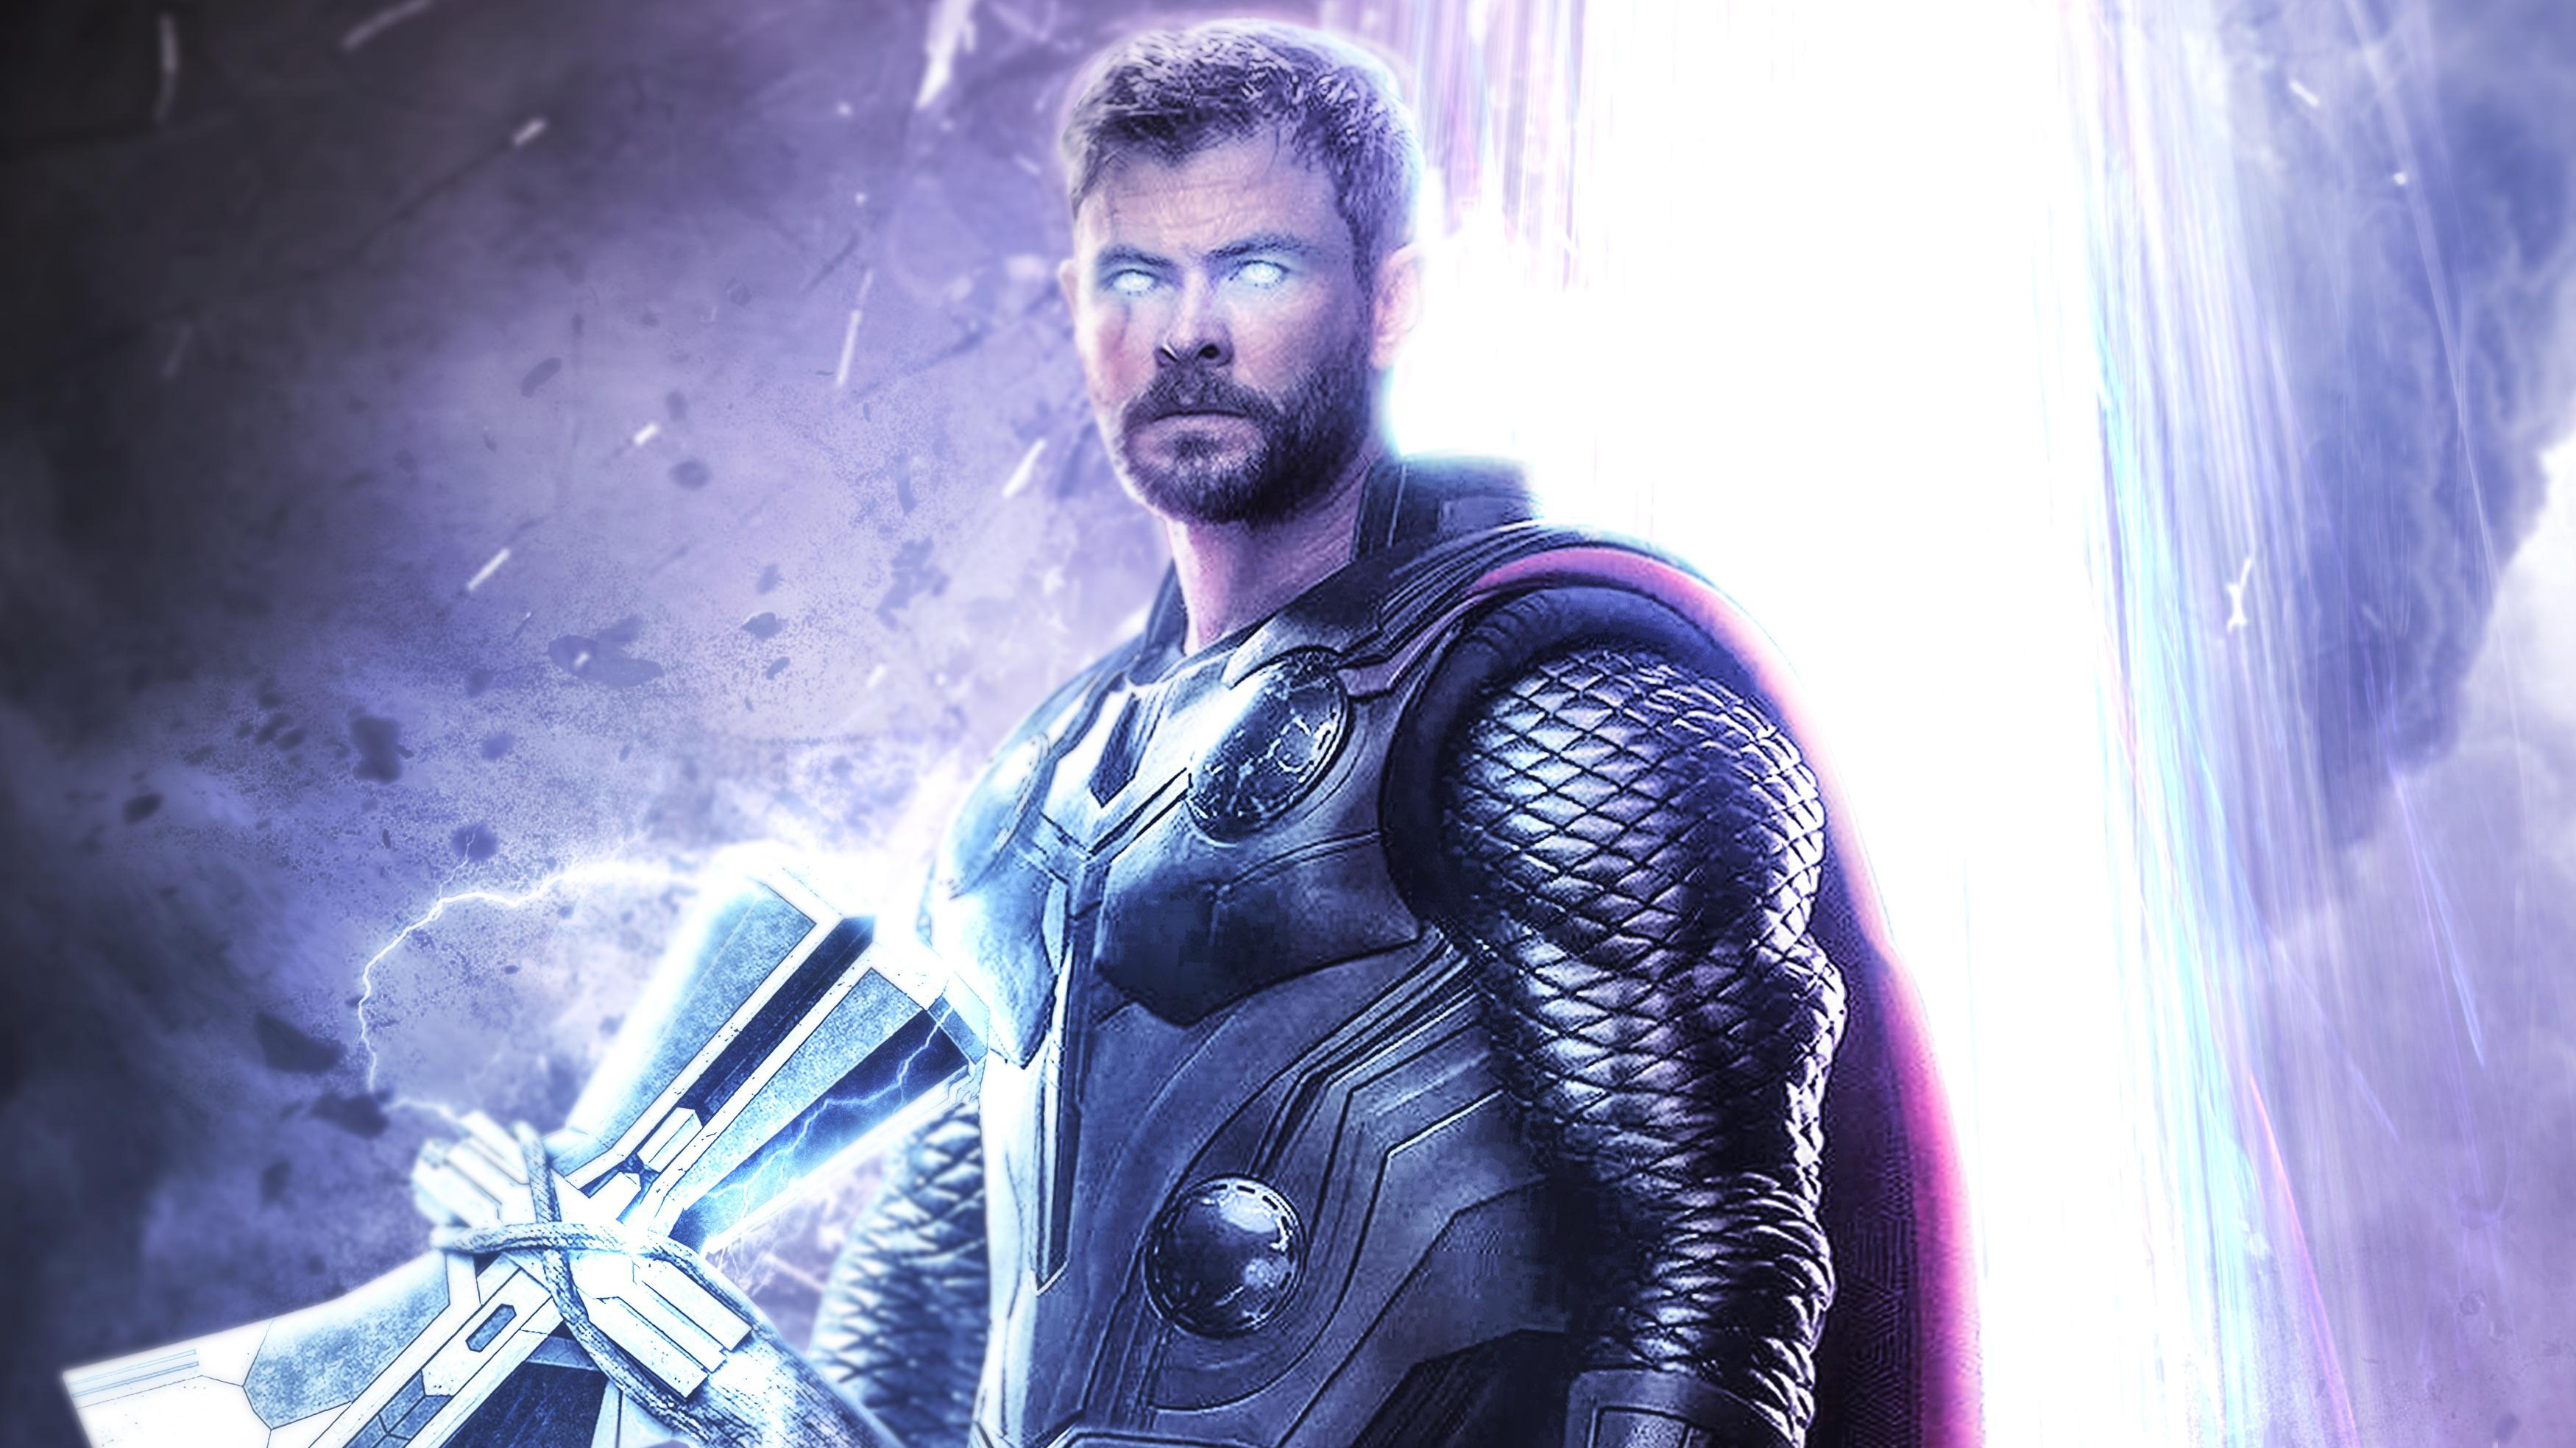 1920x1200 Thor Avengers Endgame 1080p Resolution Hd 4k